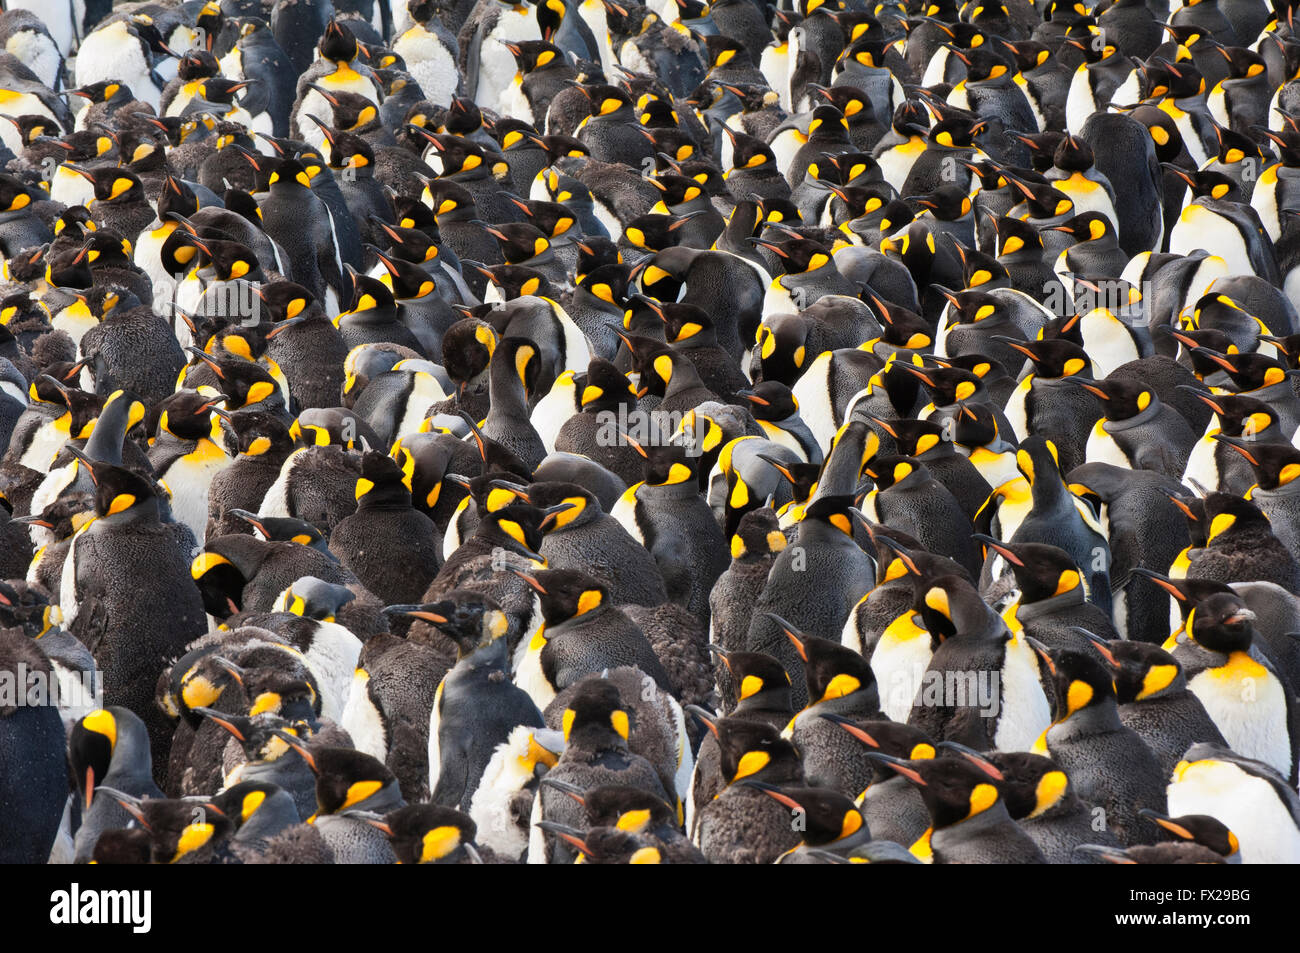 King penguin (Aptenodytes patagonicus) colony, St. Andrews Bay, South Georgia Island - Stock Image